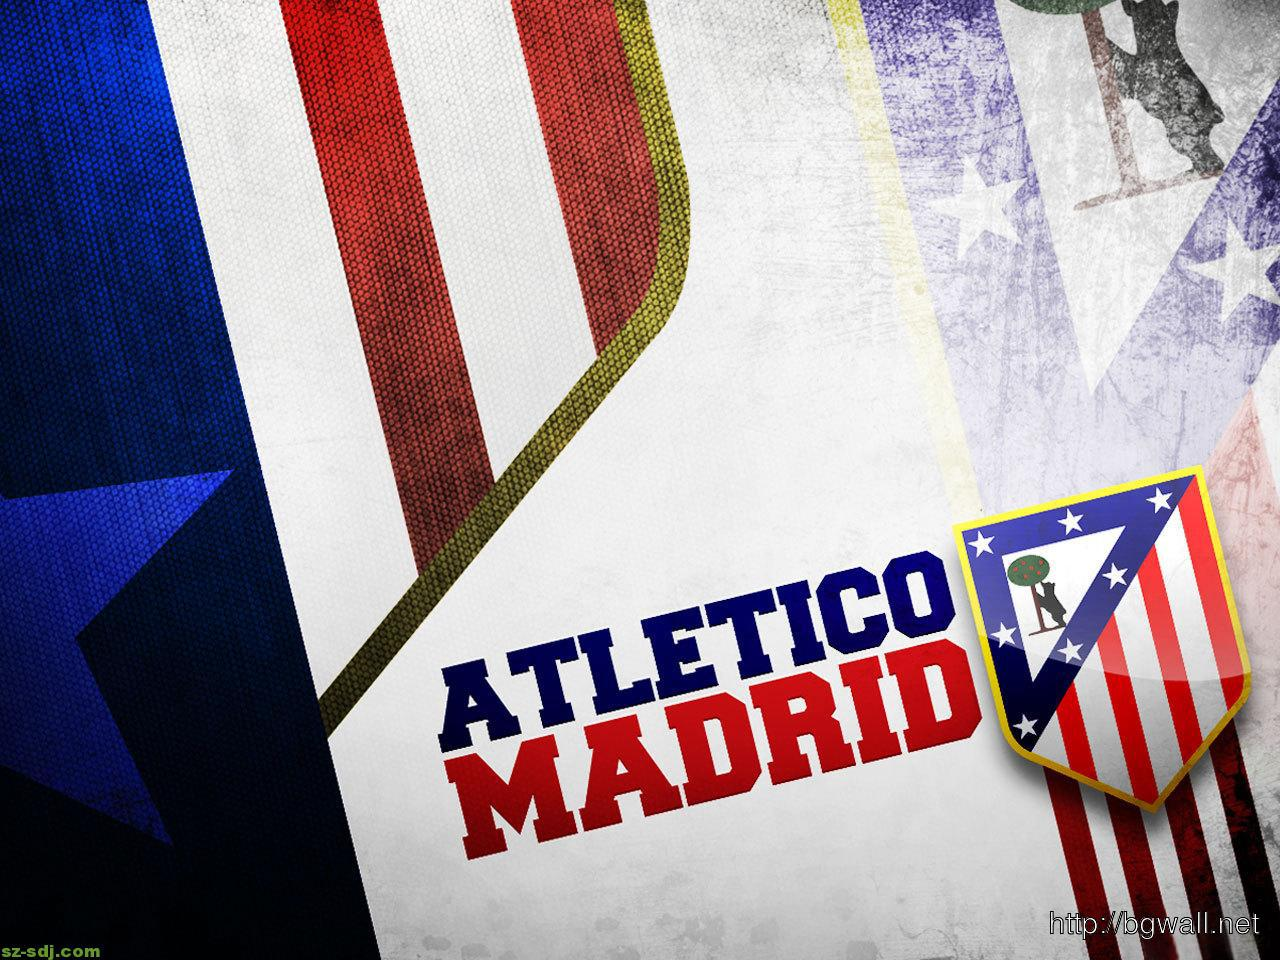 atletico-madrid-logo-desktop-wallpaper